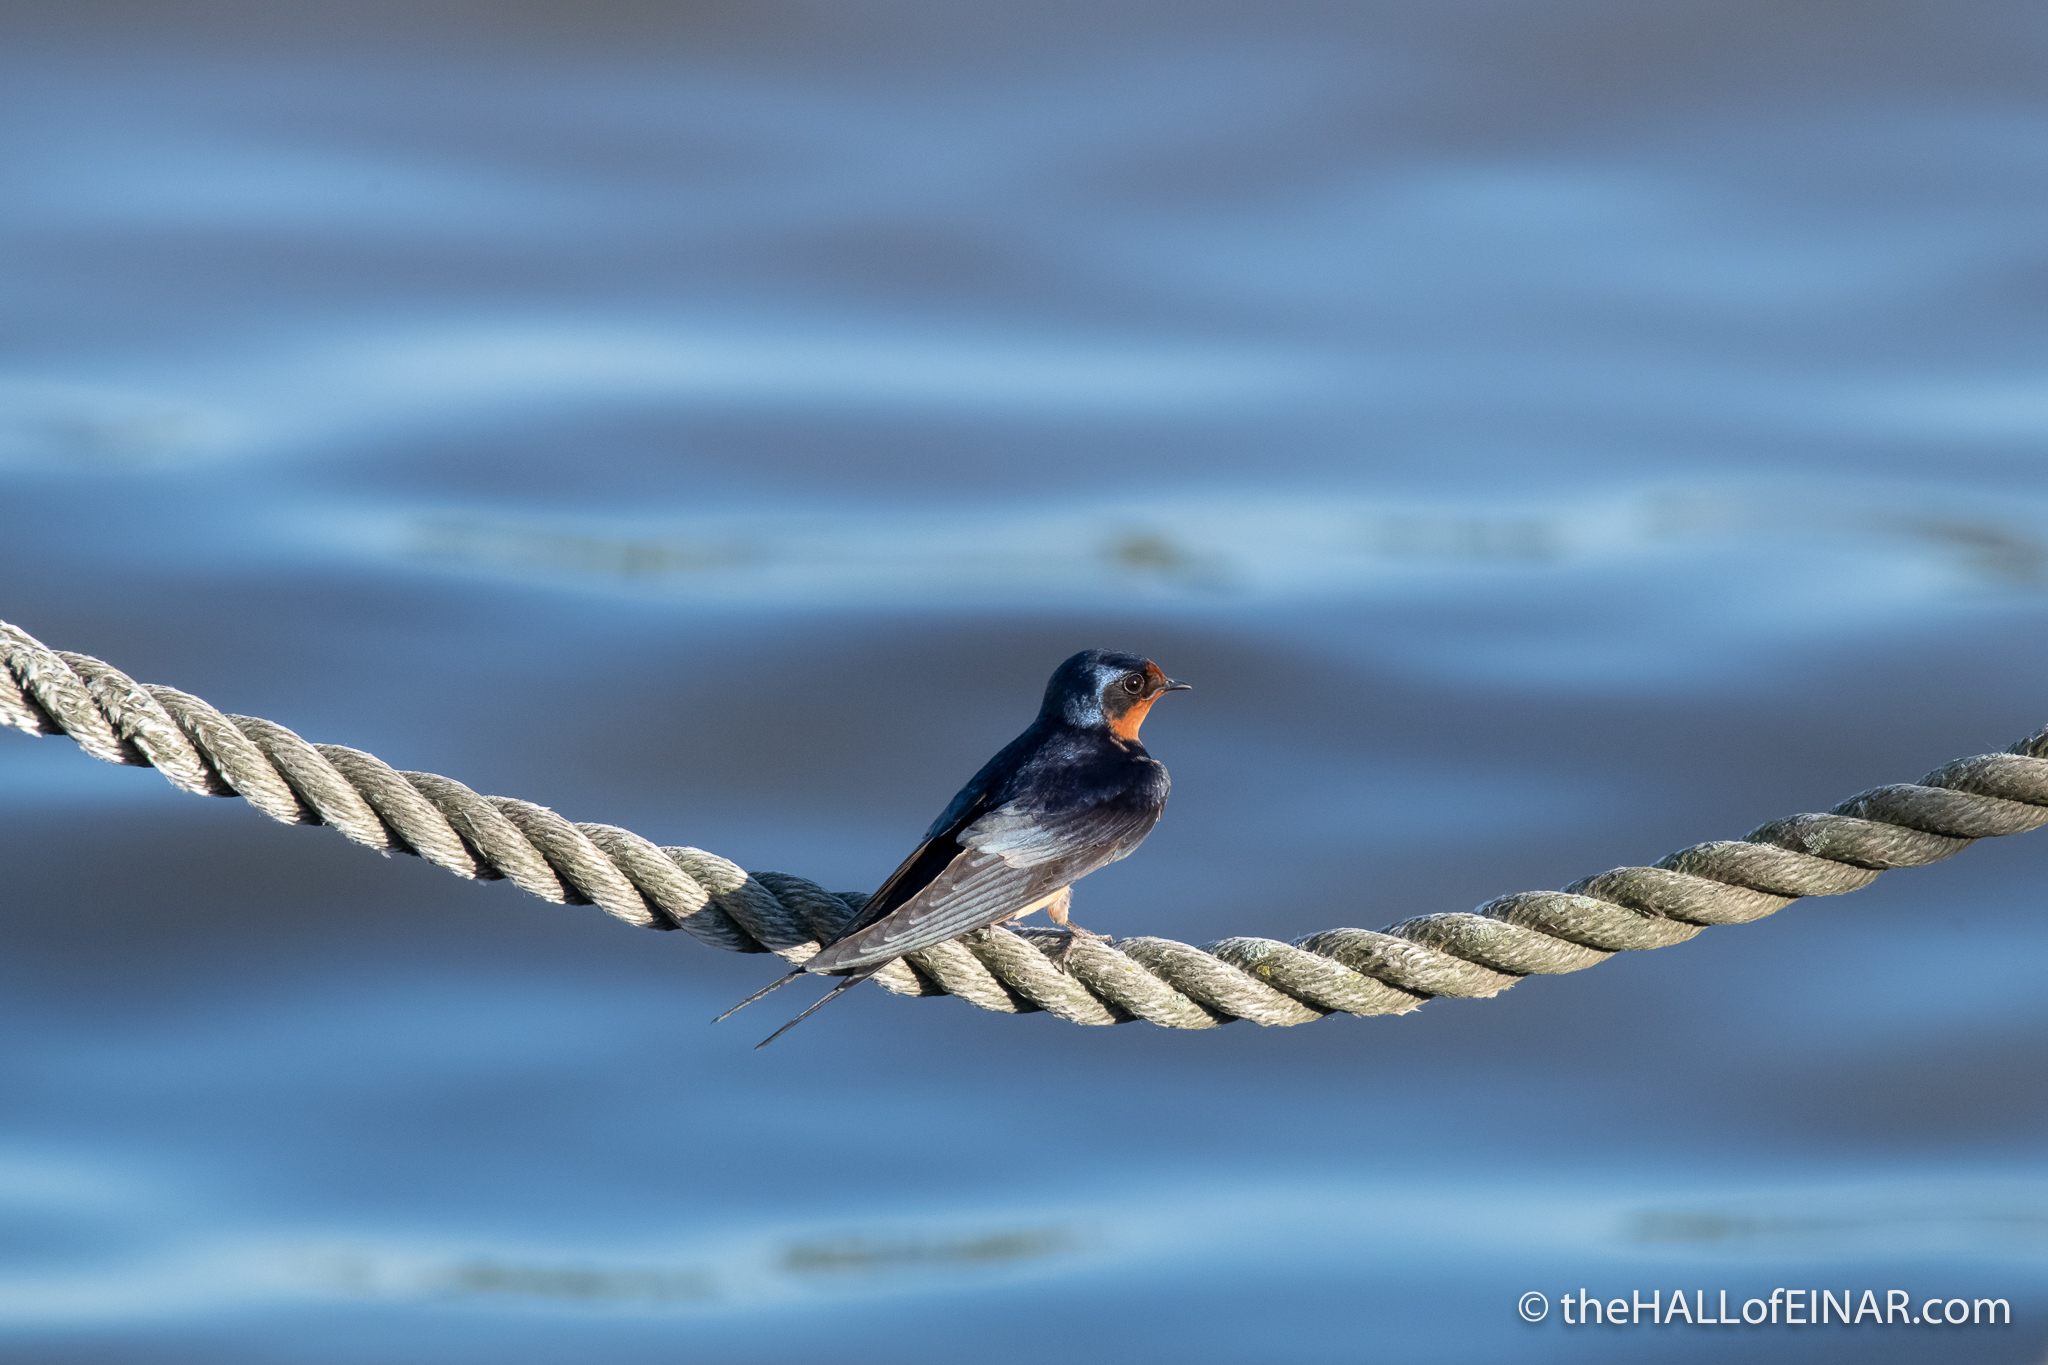 Barn Swallow - The Hall of Einar - photograph (c) David Bailey (not the)